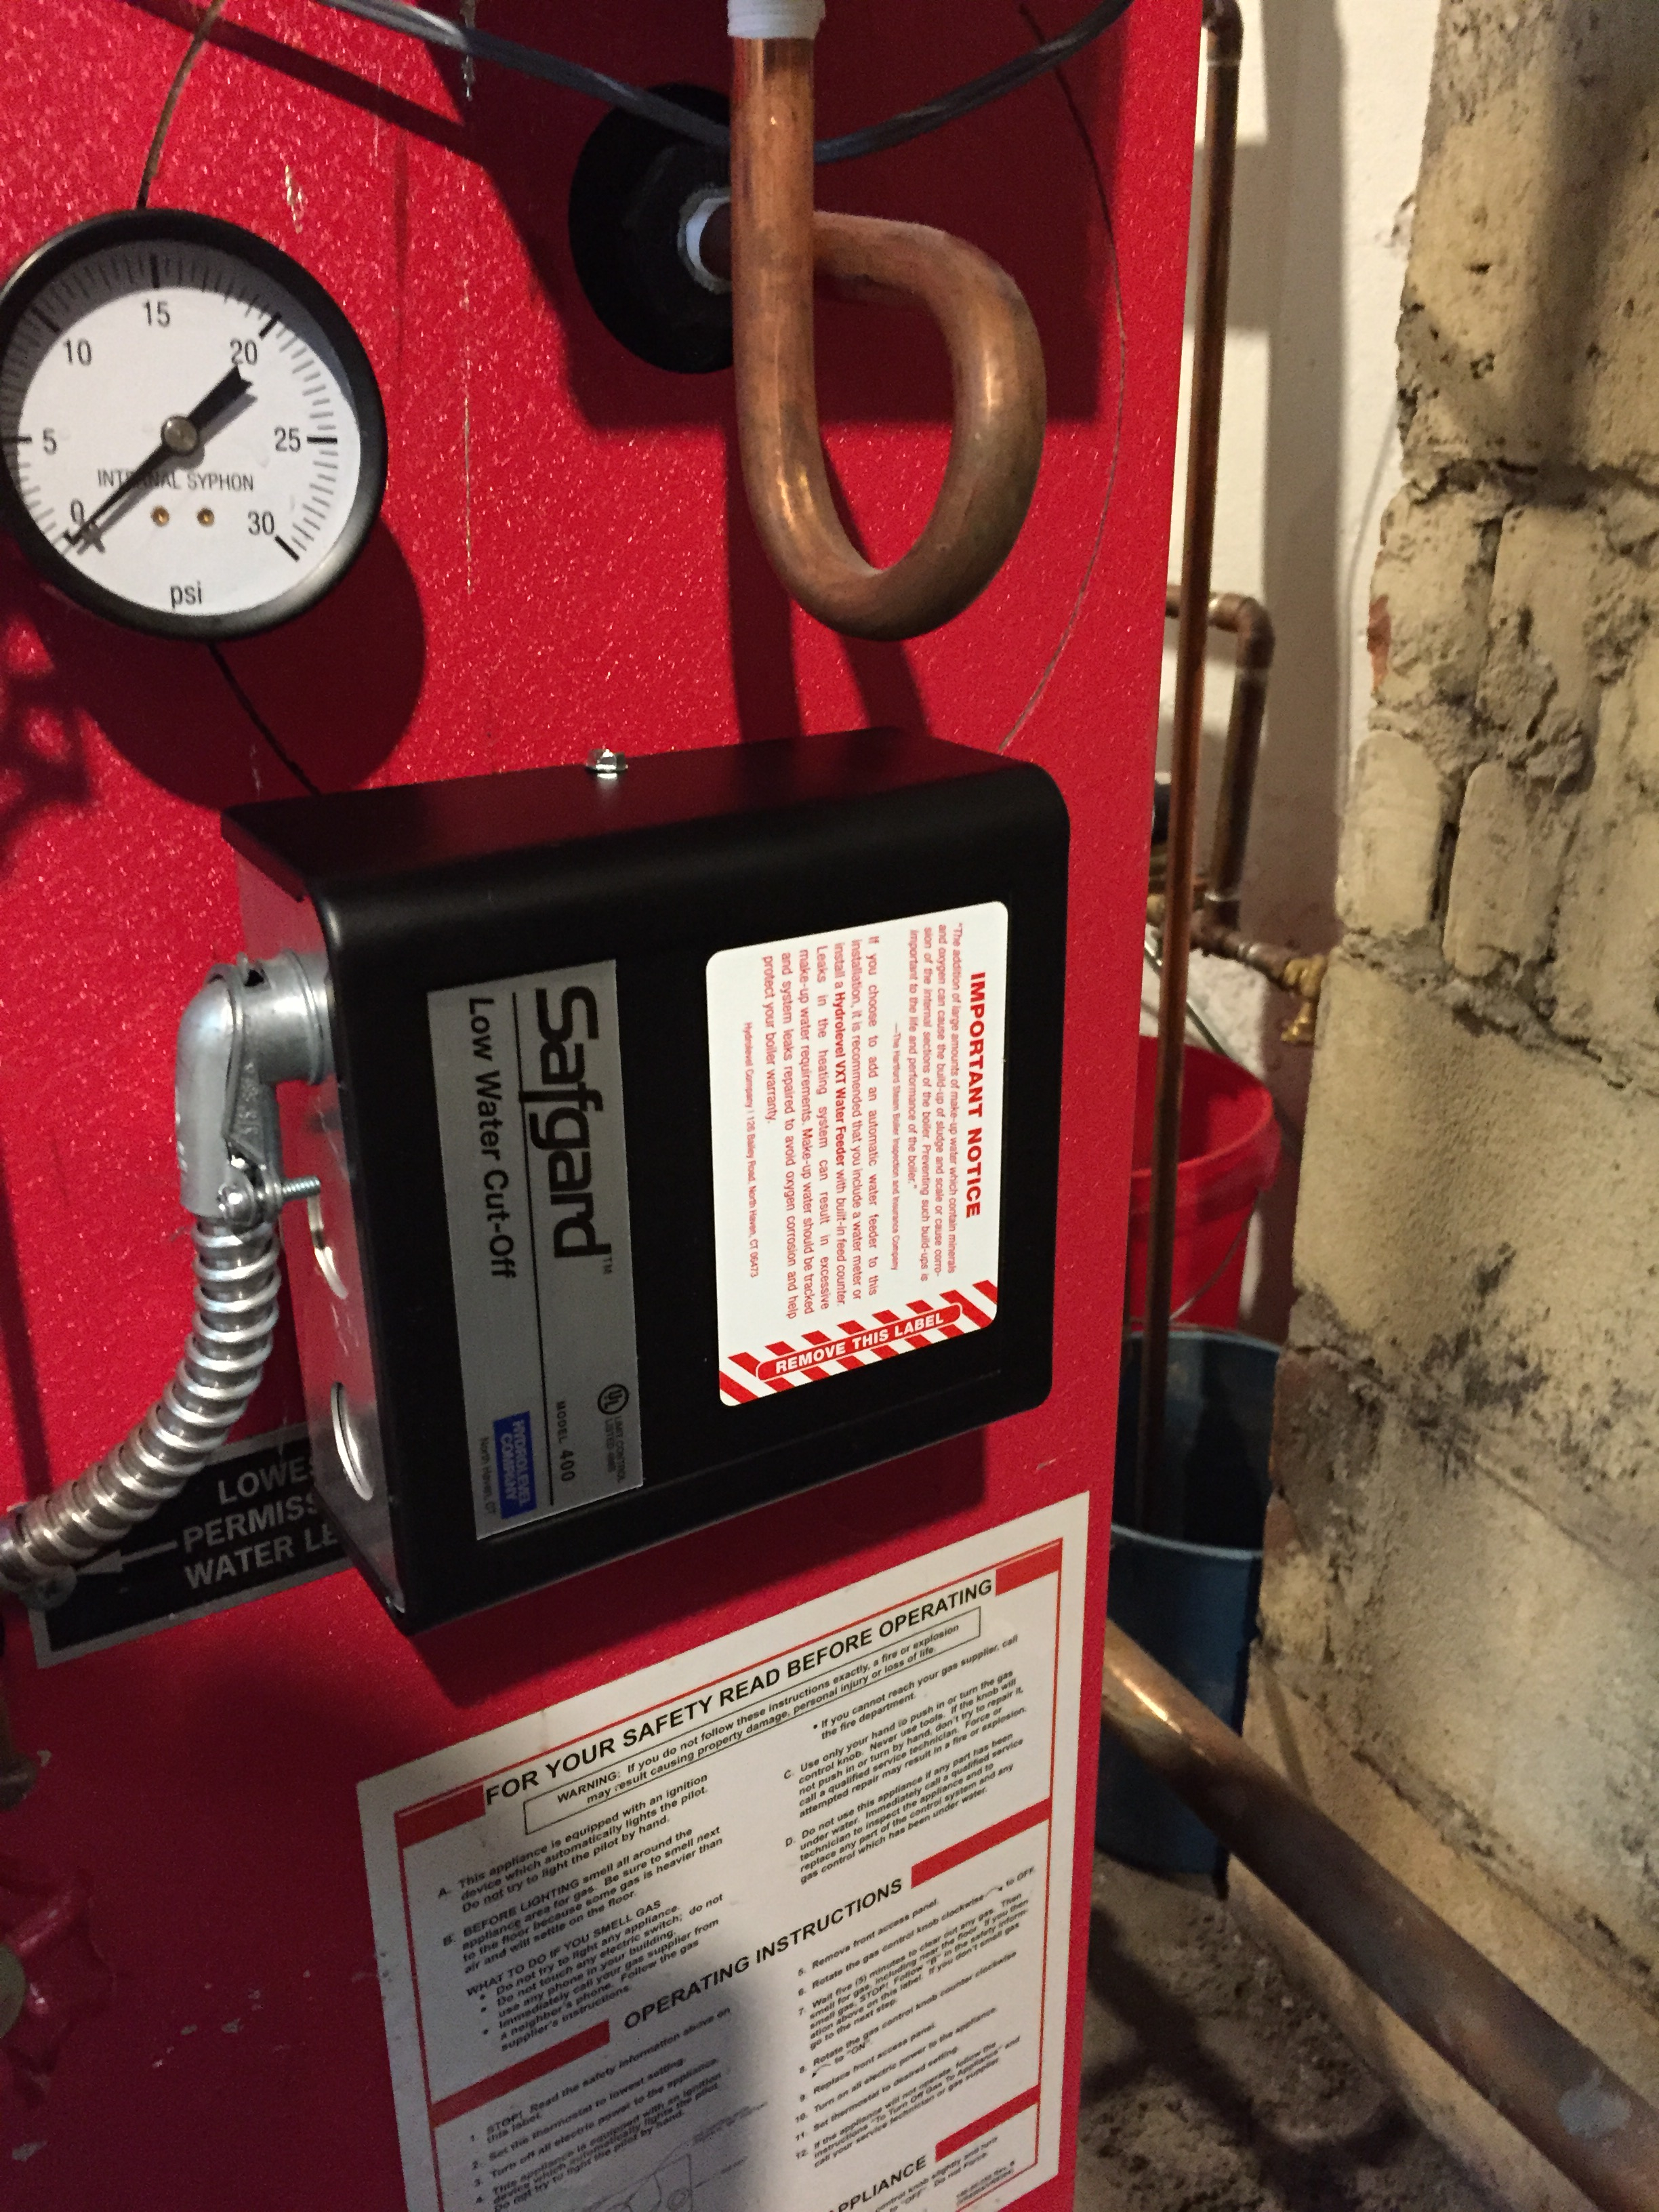 dn8t1g635pvd cyclegard to safgard issue heating help the wall safeguard low water cut off wiring diagram at mr168.co